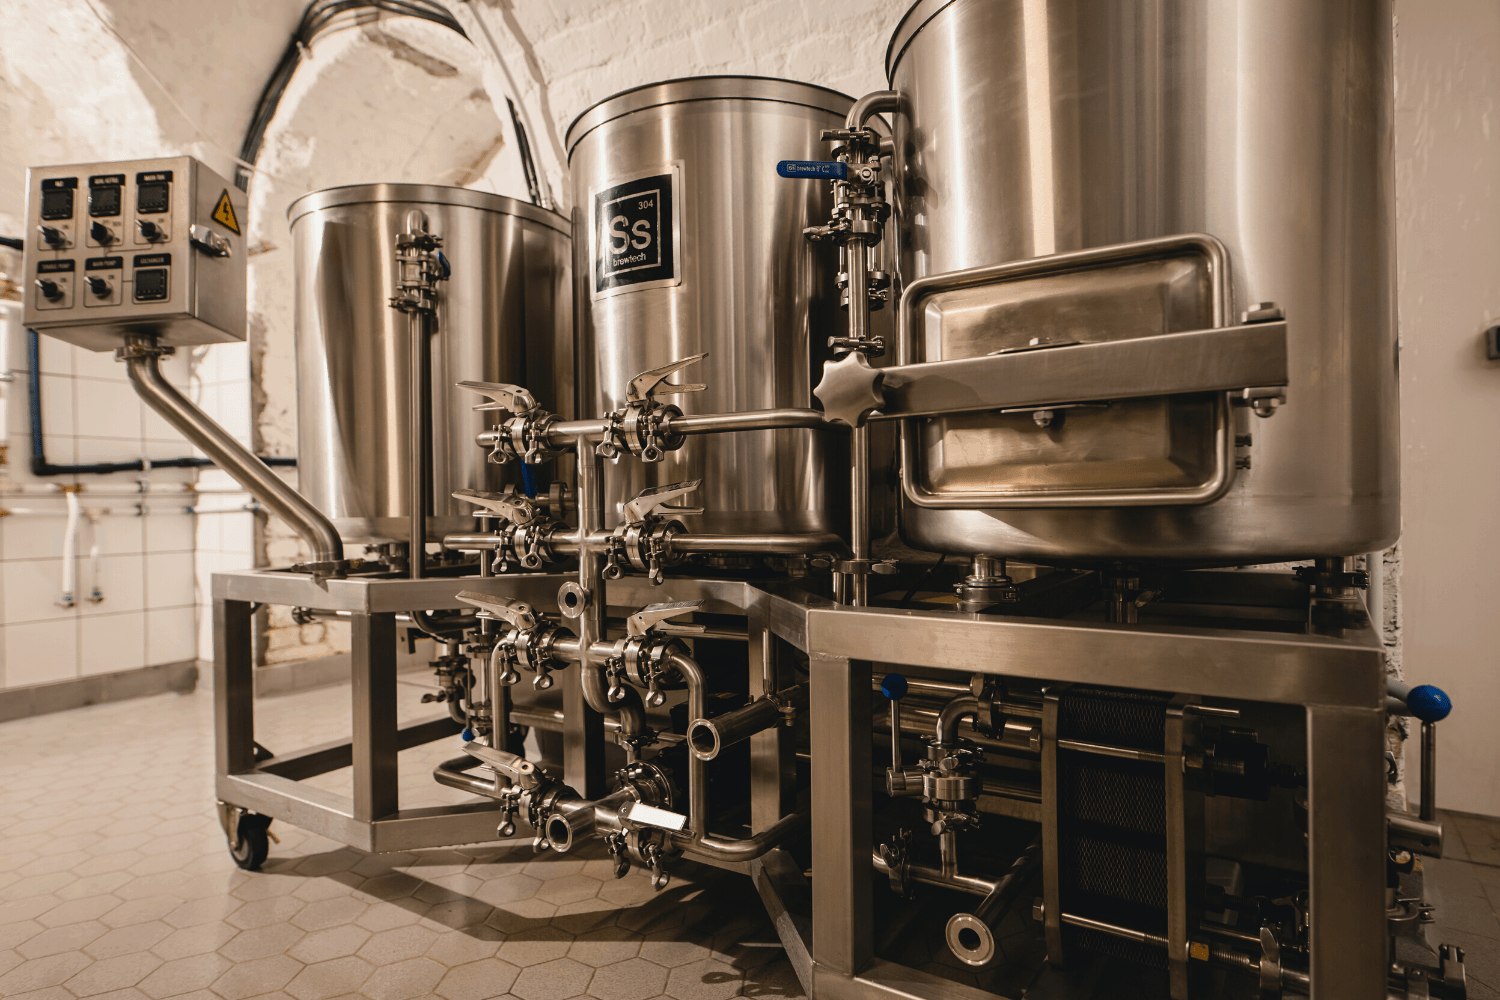 Gravity Budapest - Ss Brewtech Pilot Small Batch Brewery - 120l brewhouse